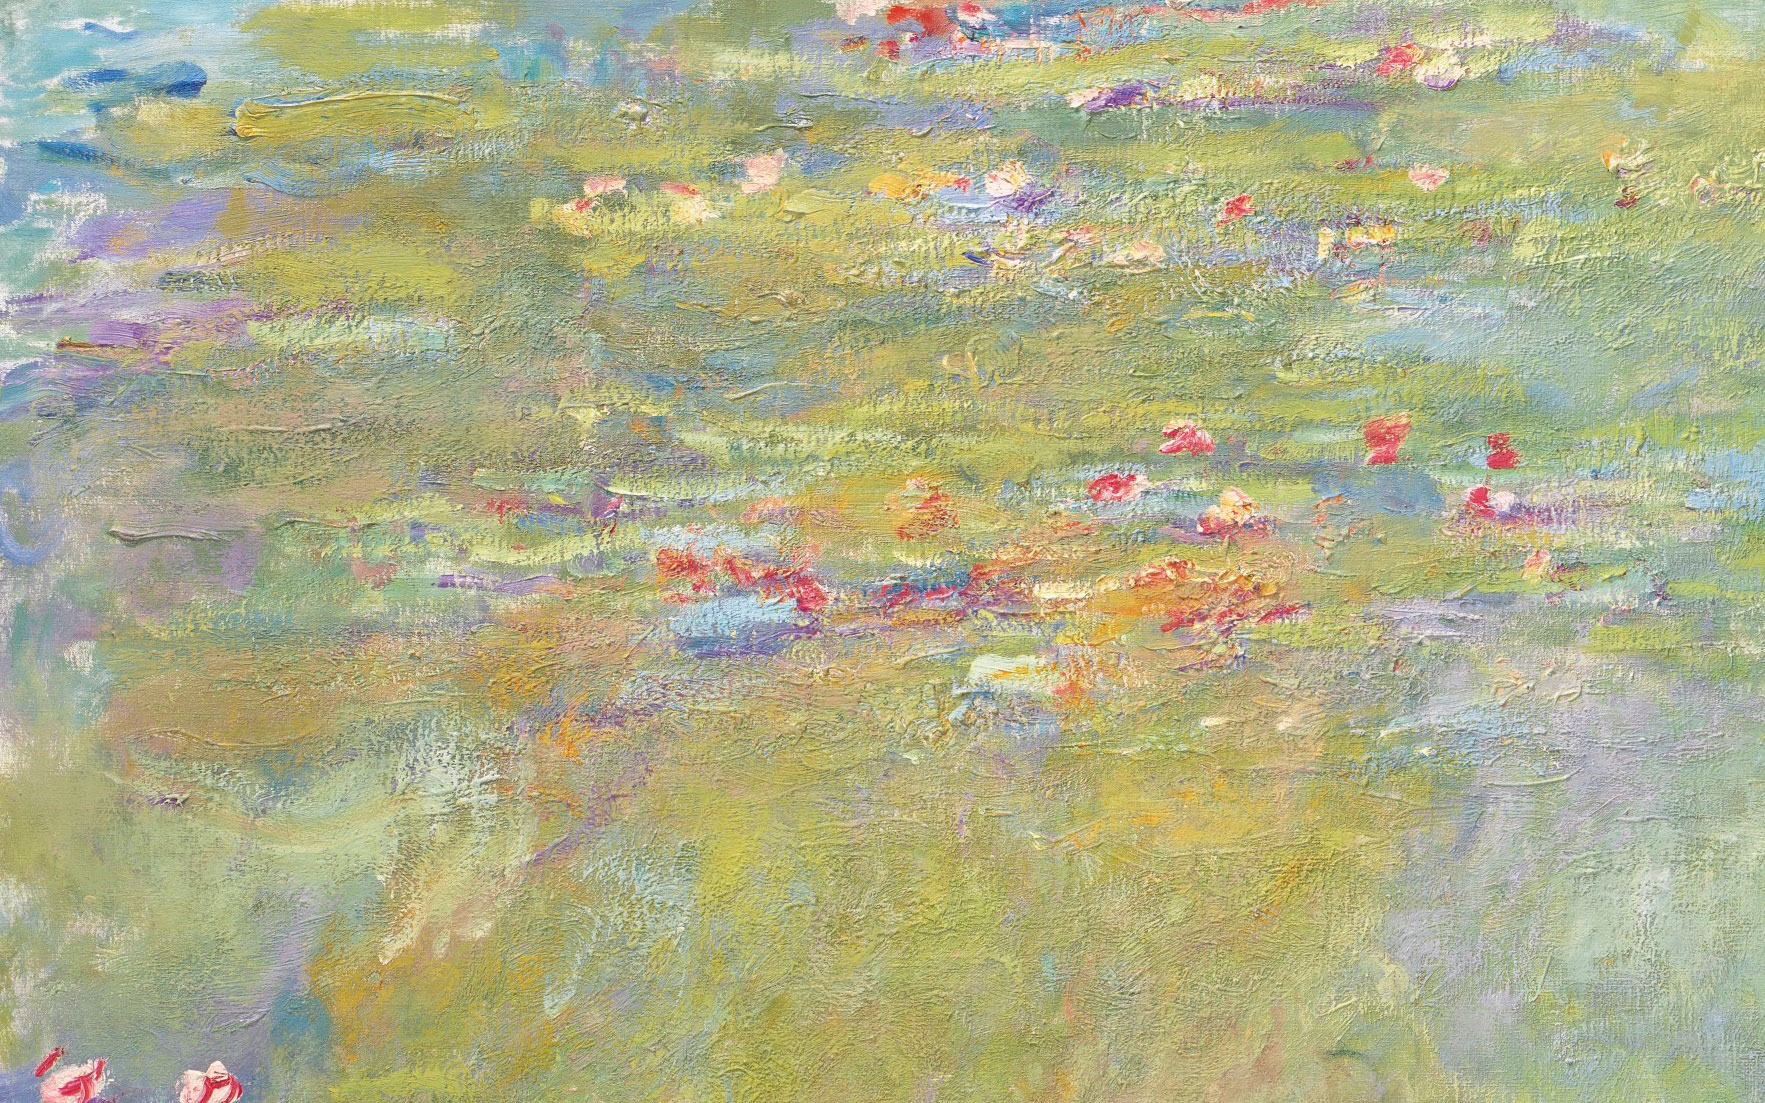 Detail of Claude Monets (1840-1926), Le bassin aux nymphéas, 1917-19.  Oil on canvas. 39¾ x 79 in (100.7 x 200.8 cm). Estimate $30,000,000-50,000,000. Offered in the Impressionist &